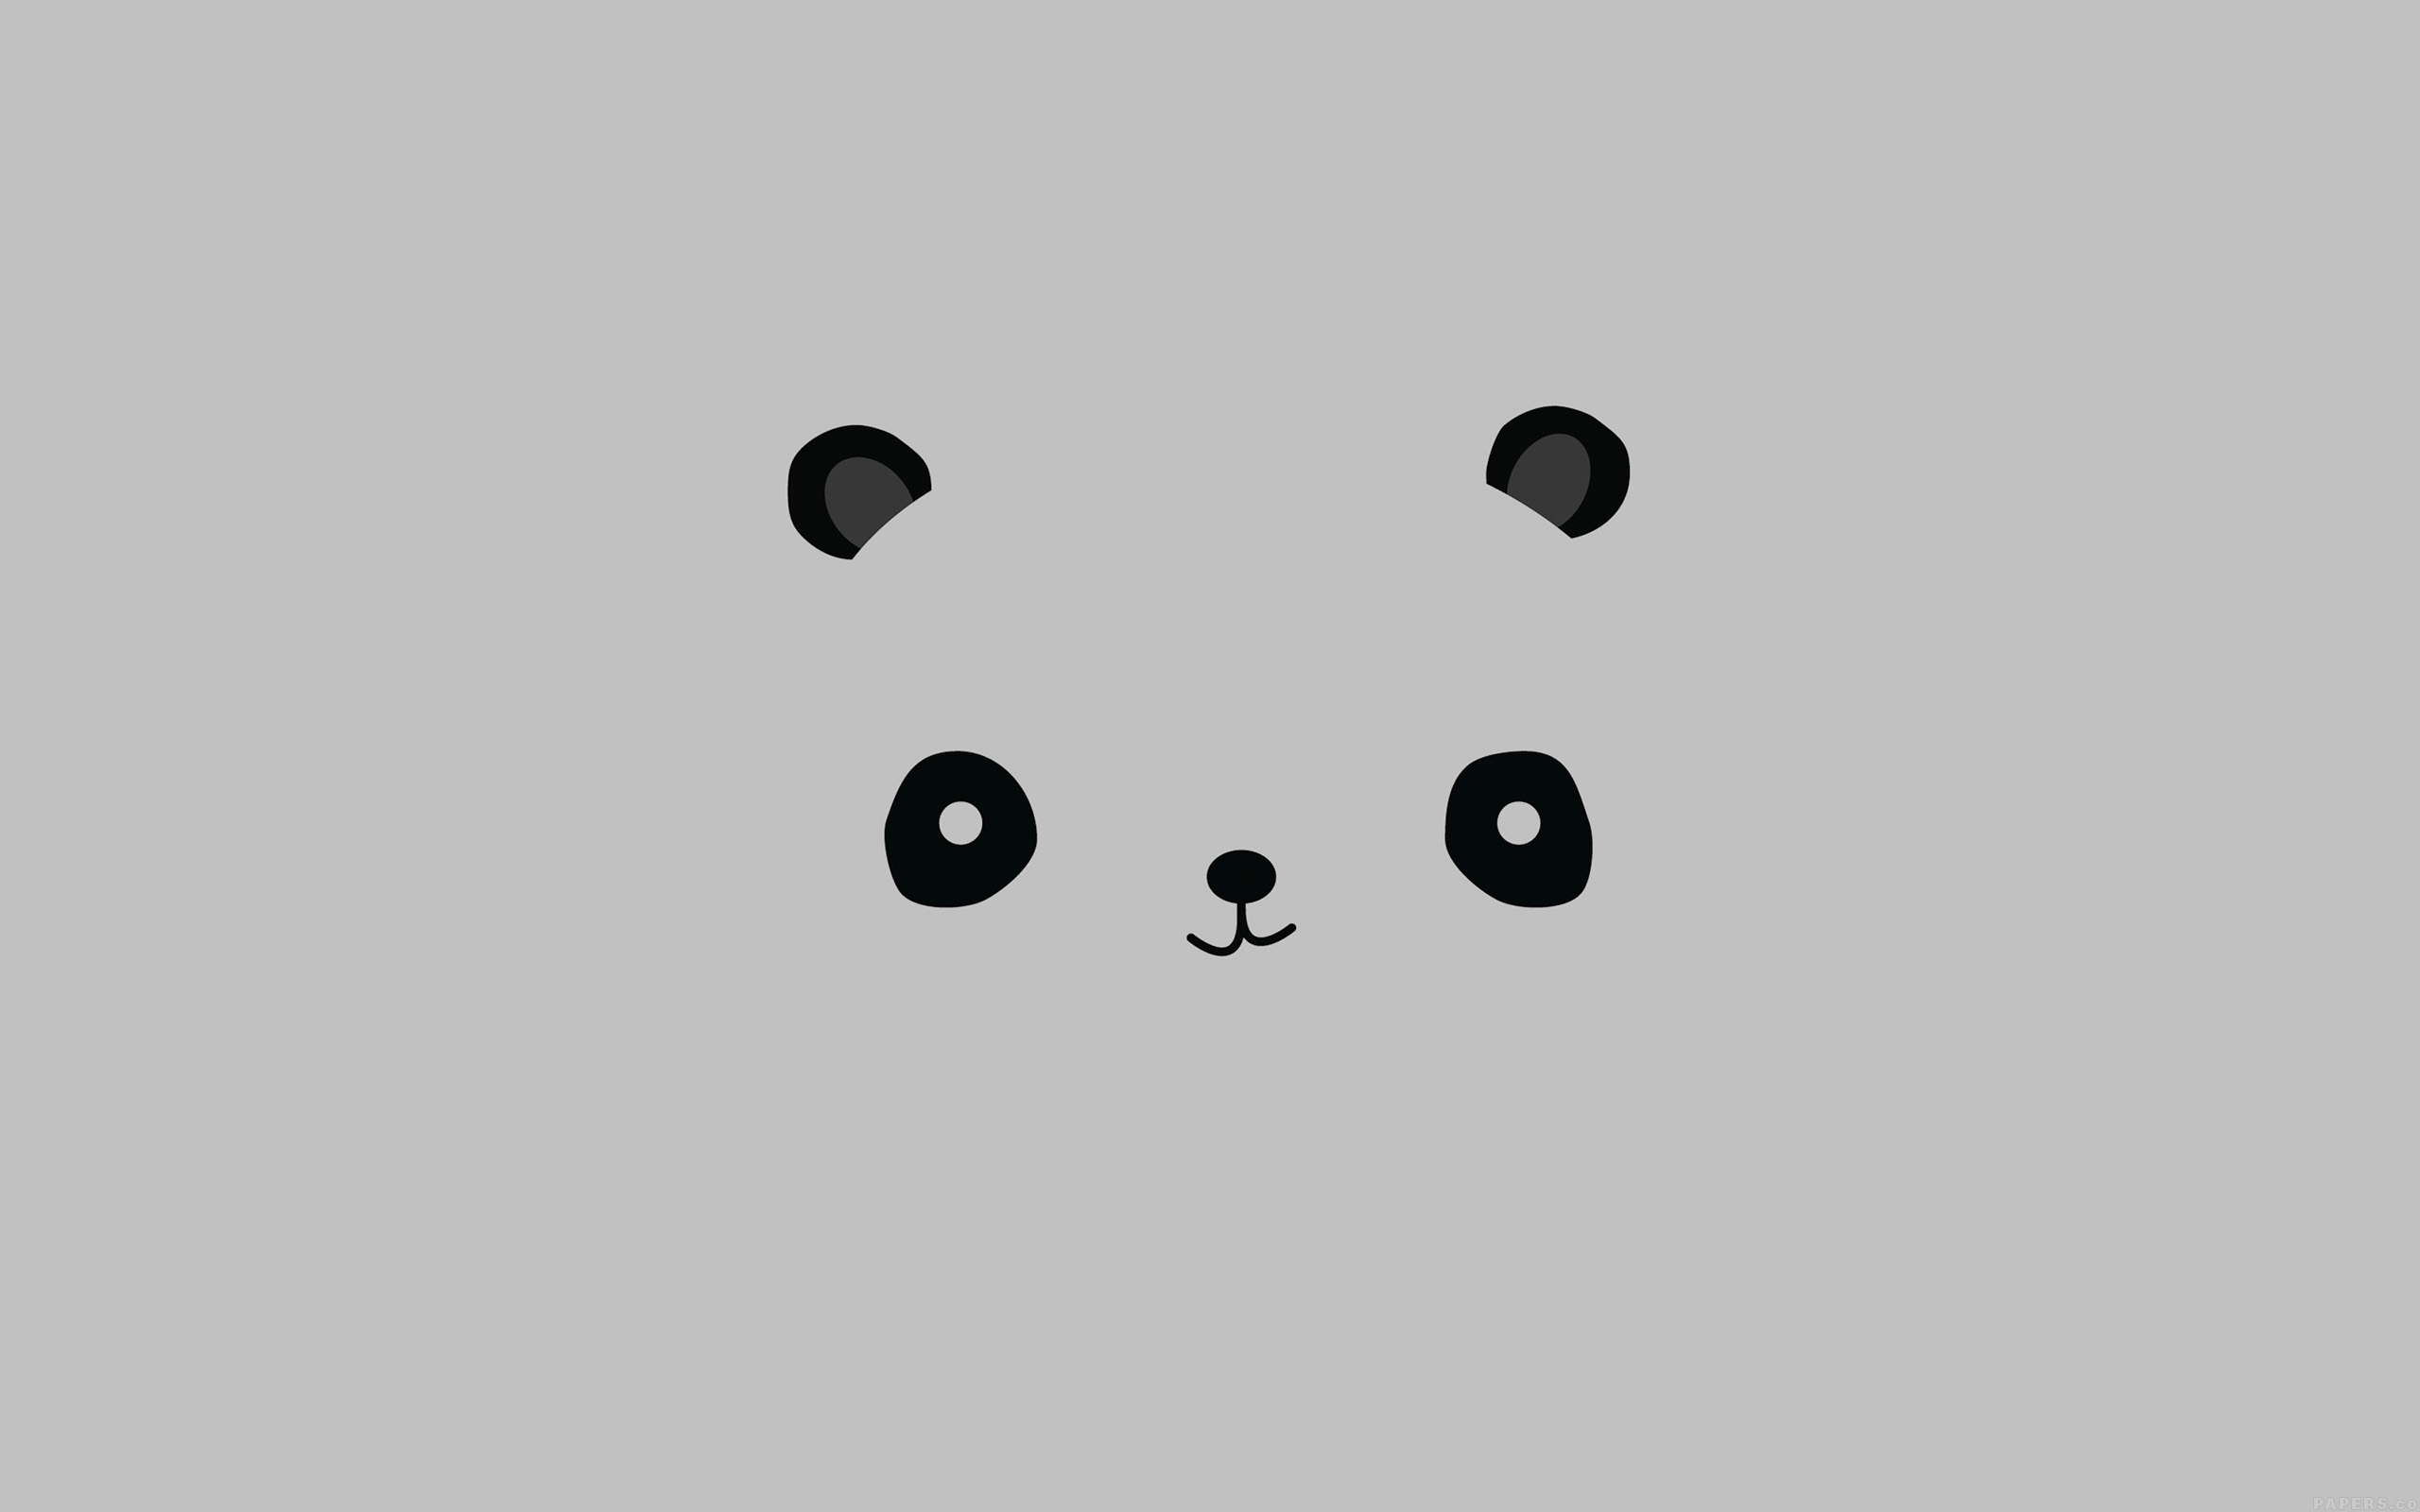 Cool Wallpaper Macbook Panda - papers  Pictures_808097.jpg